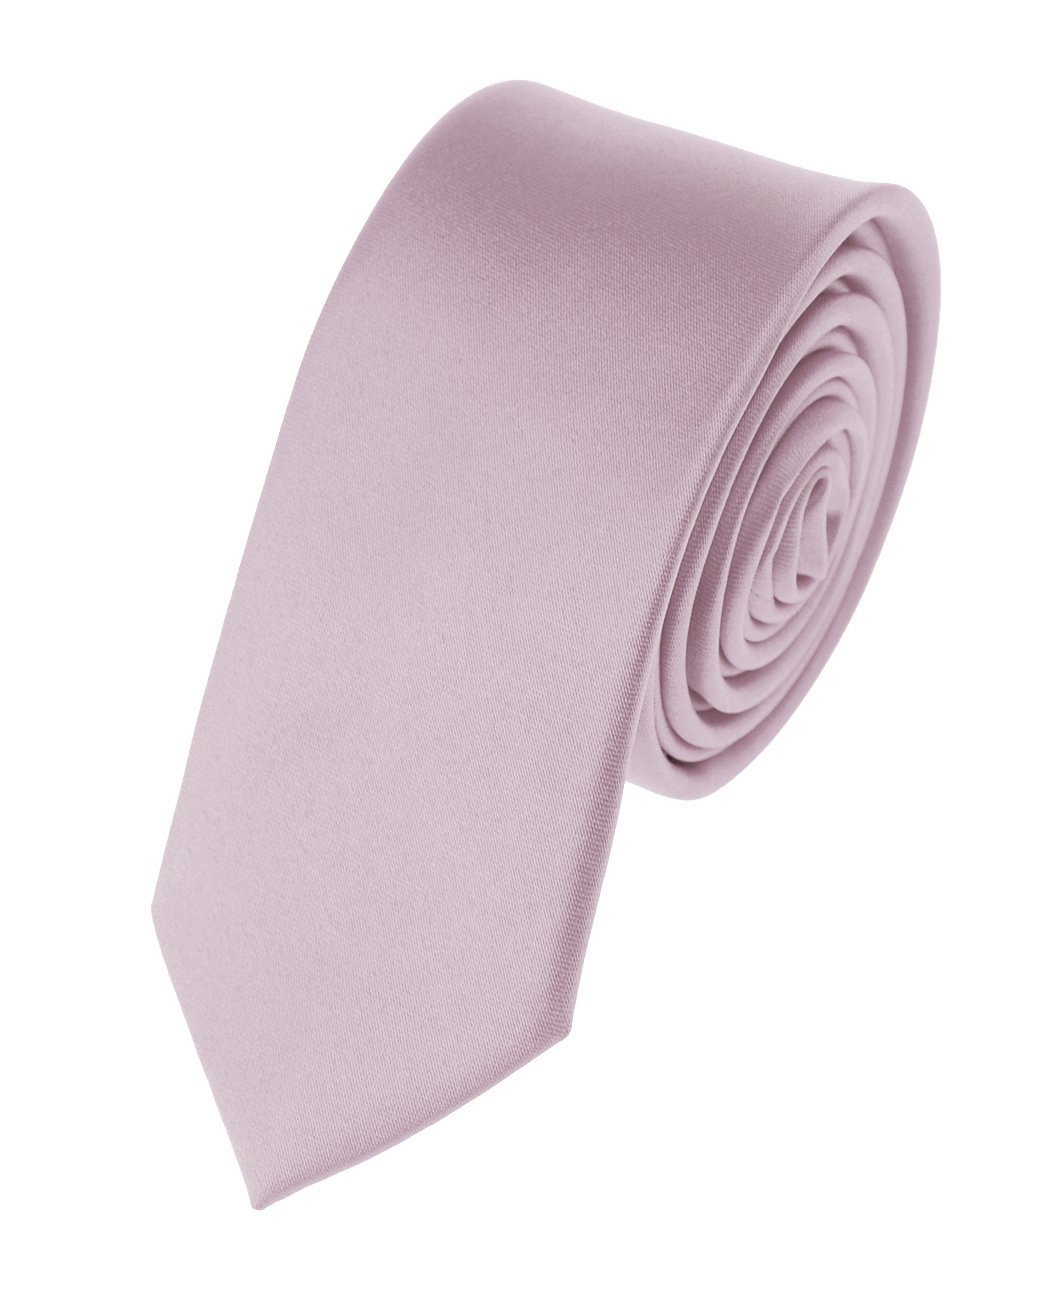 Men's Solid Color 2'' Skinny Tie, Light Pink